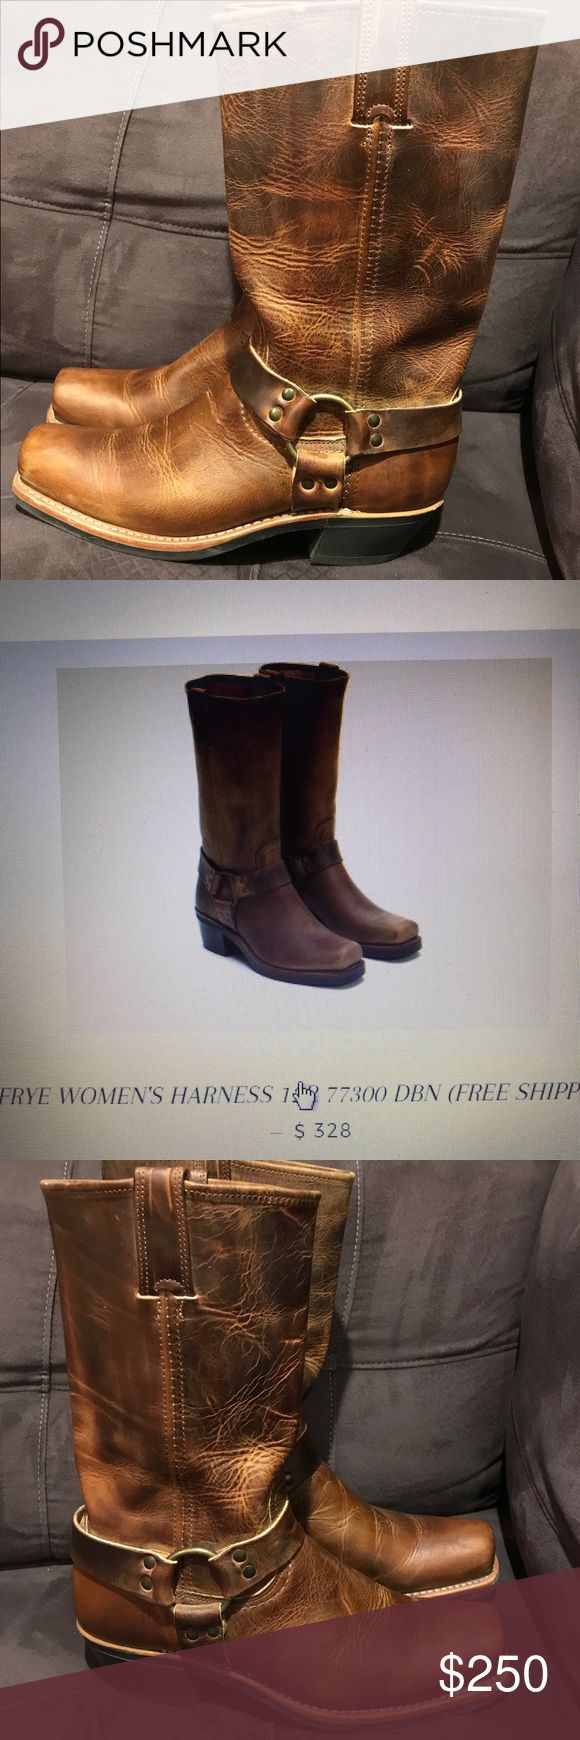 Frye Harness Boots - Excellent Condition- size 10 Frye Harness Boots only worn 3-4 times. Excellent condition. Size 10. Frye Shoes Combat & Moto Boots